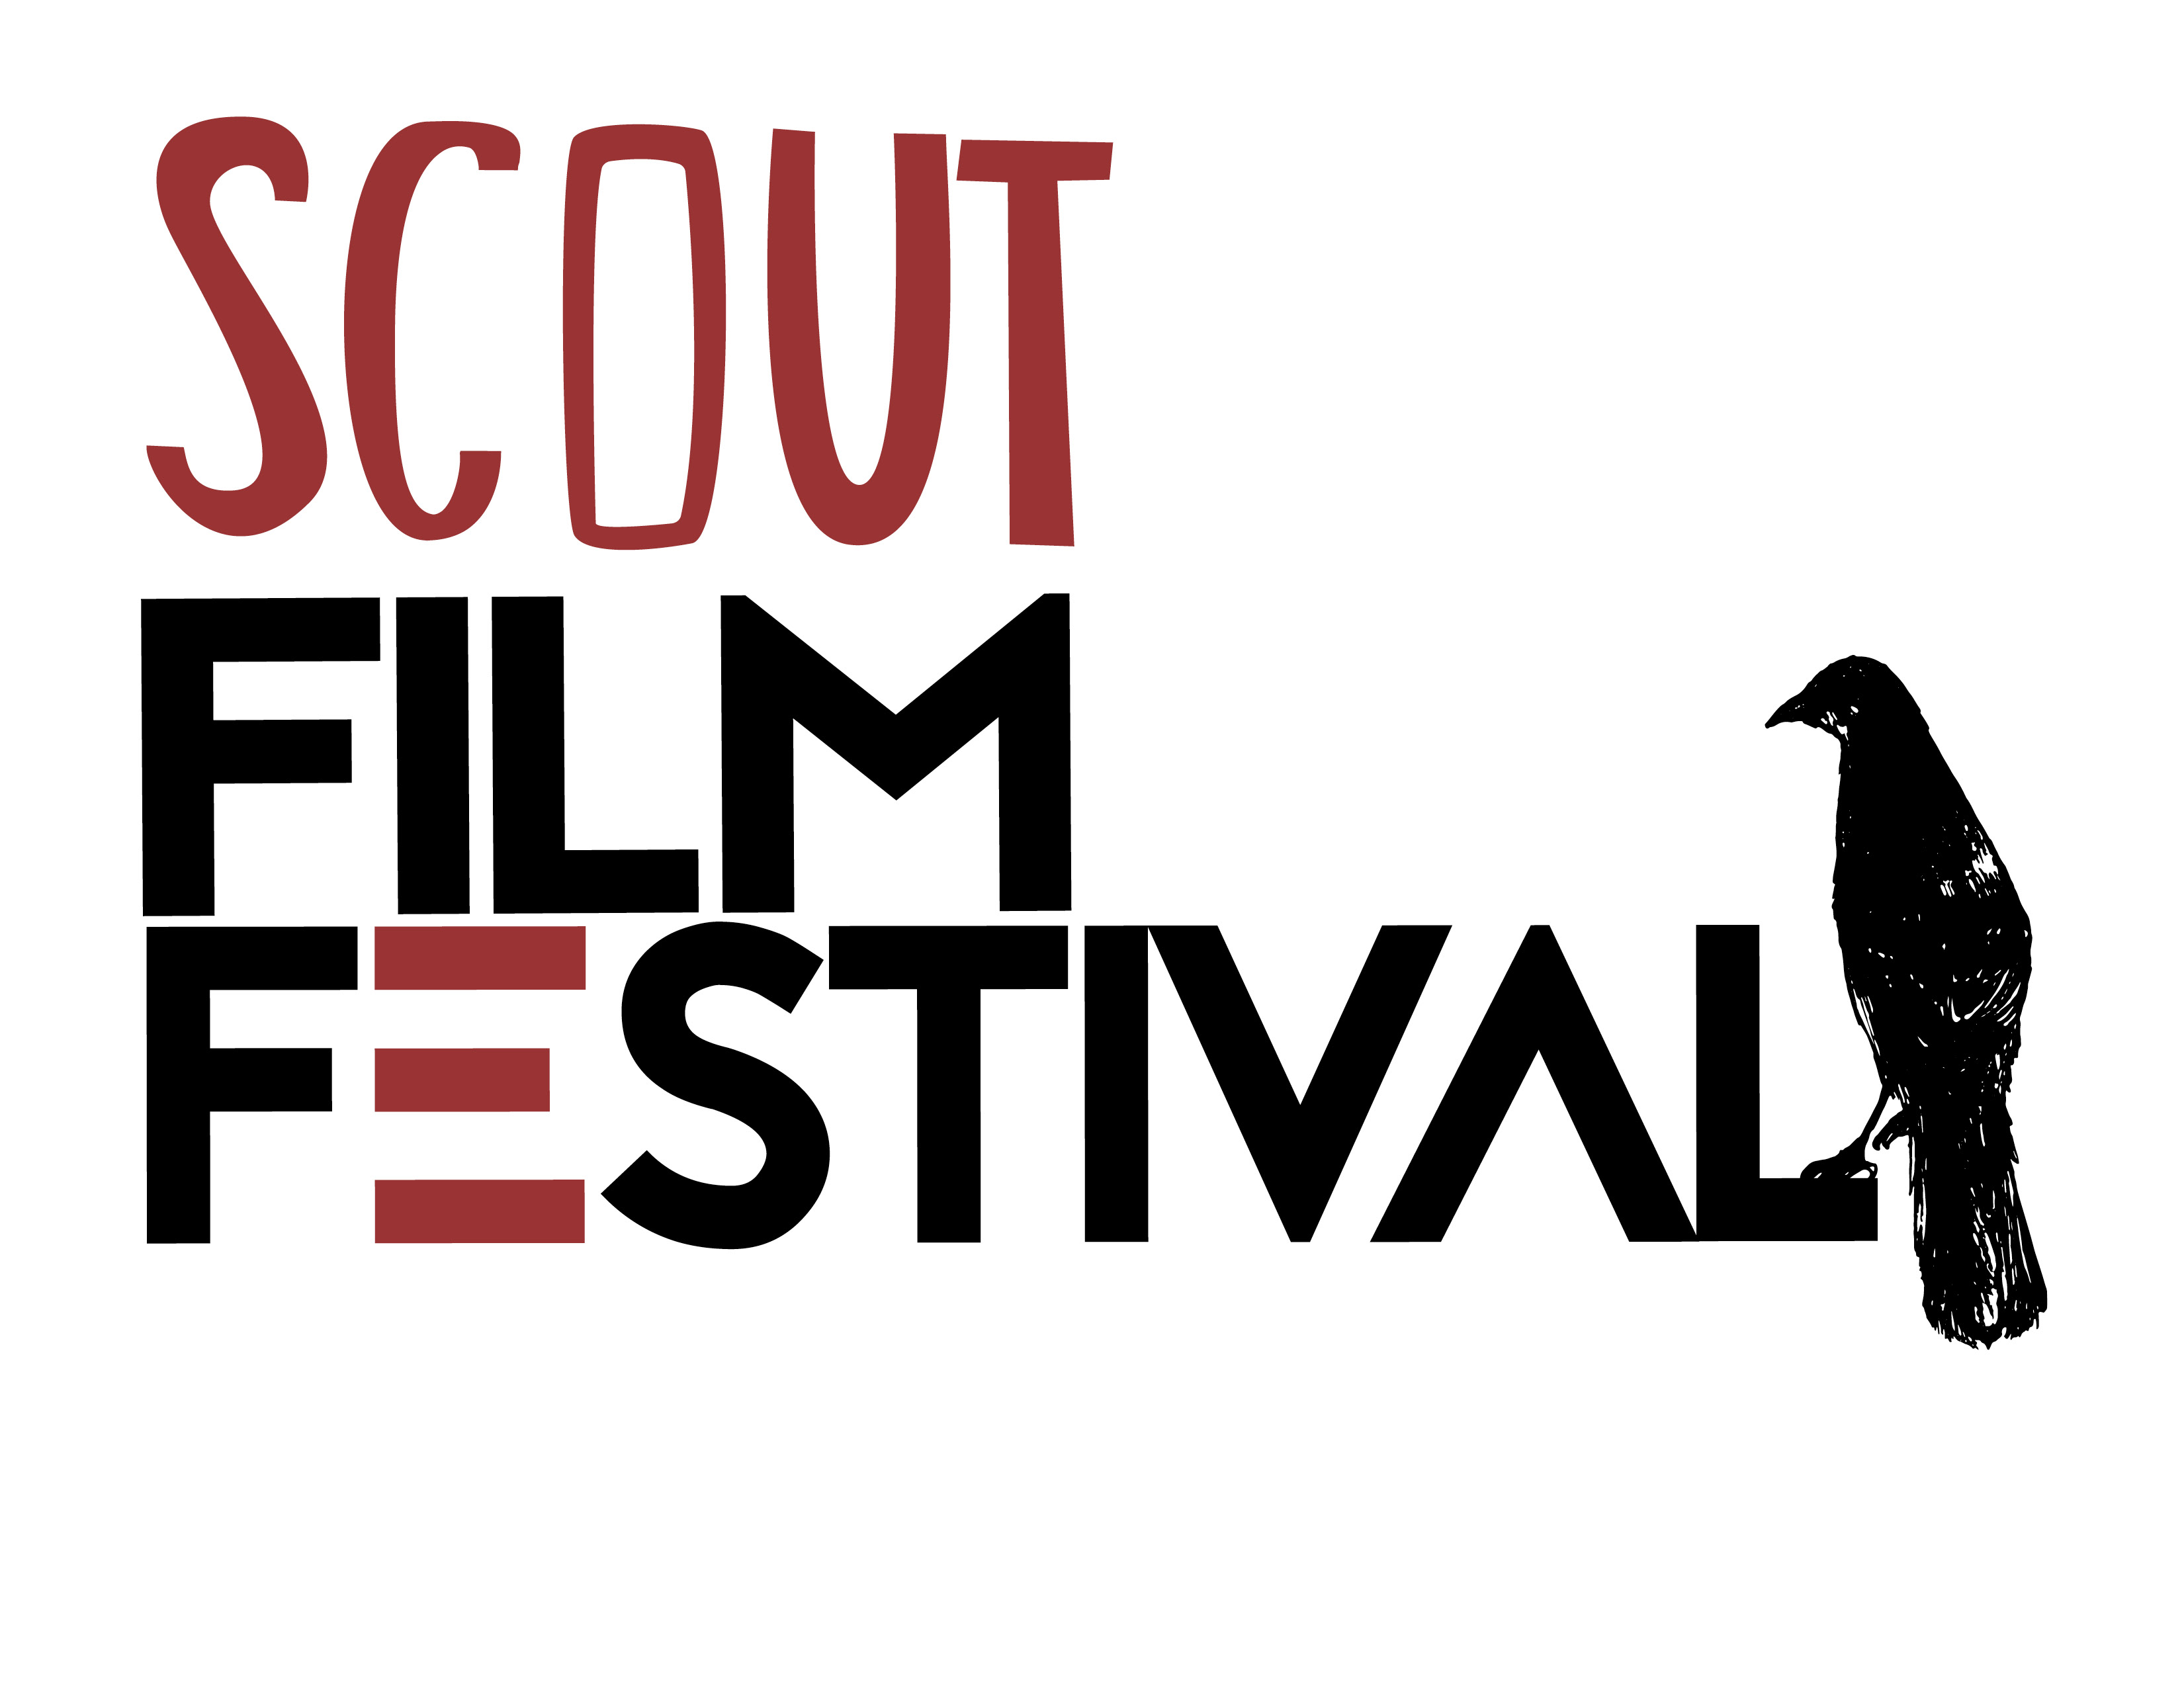 Scout Film Festival